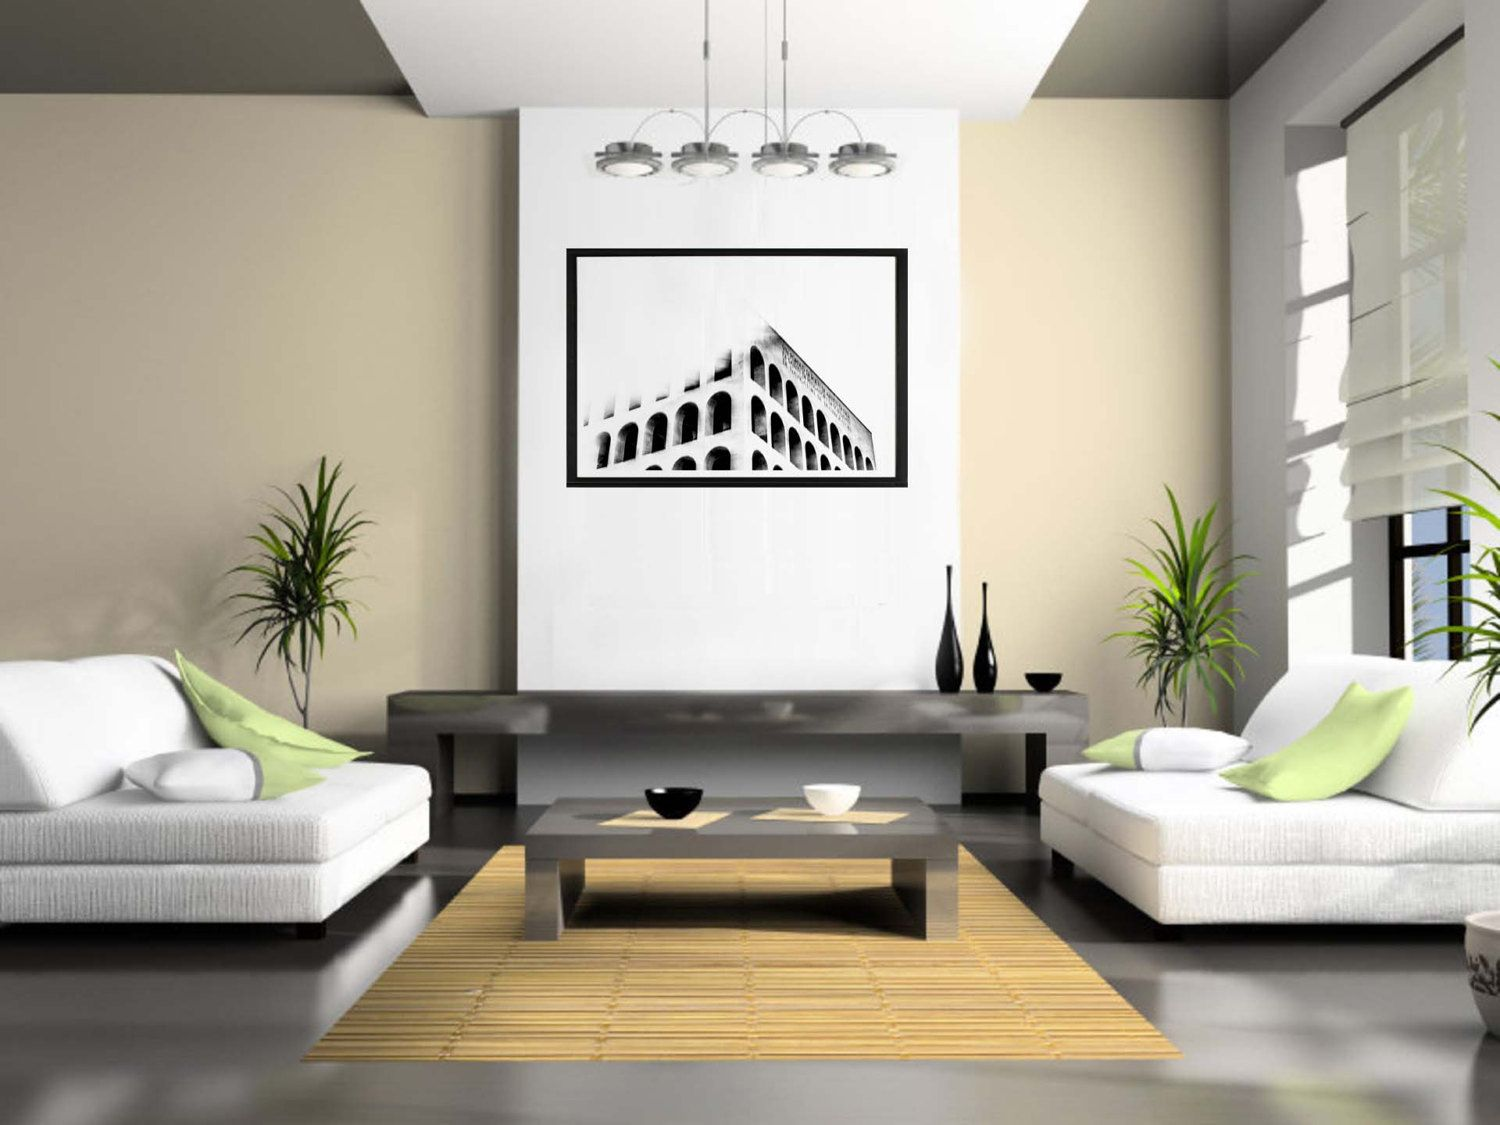 Urban Landscape Roma Fine Art Photography Black White Minimal Interior Design